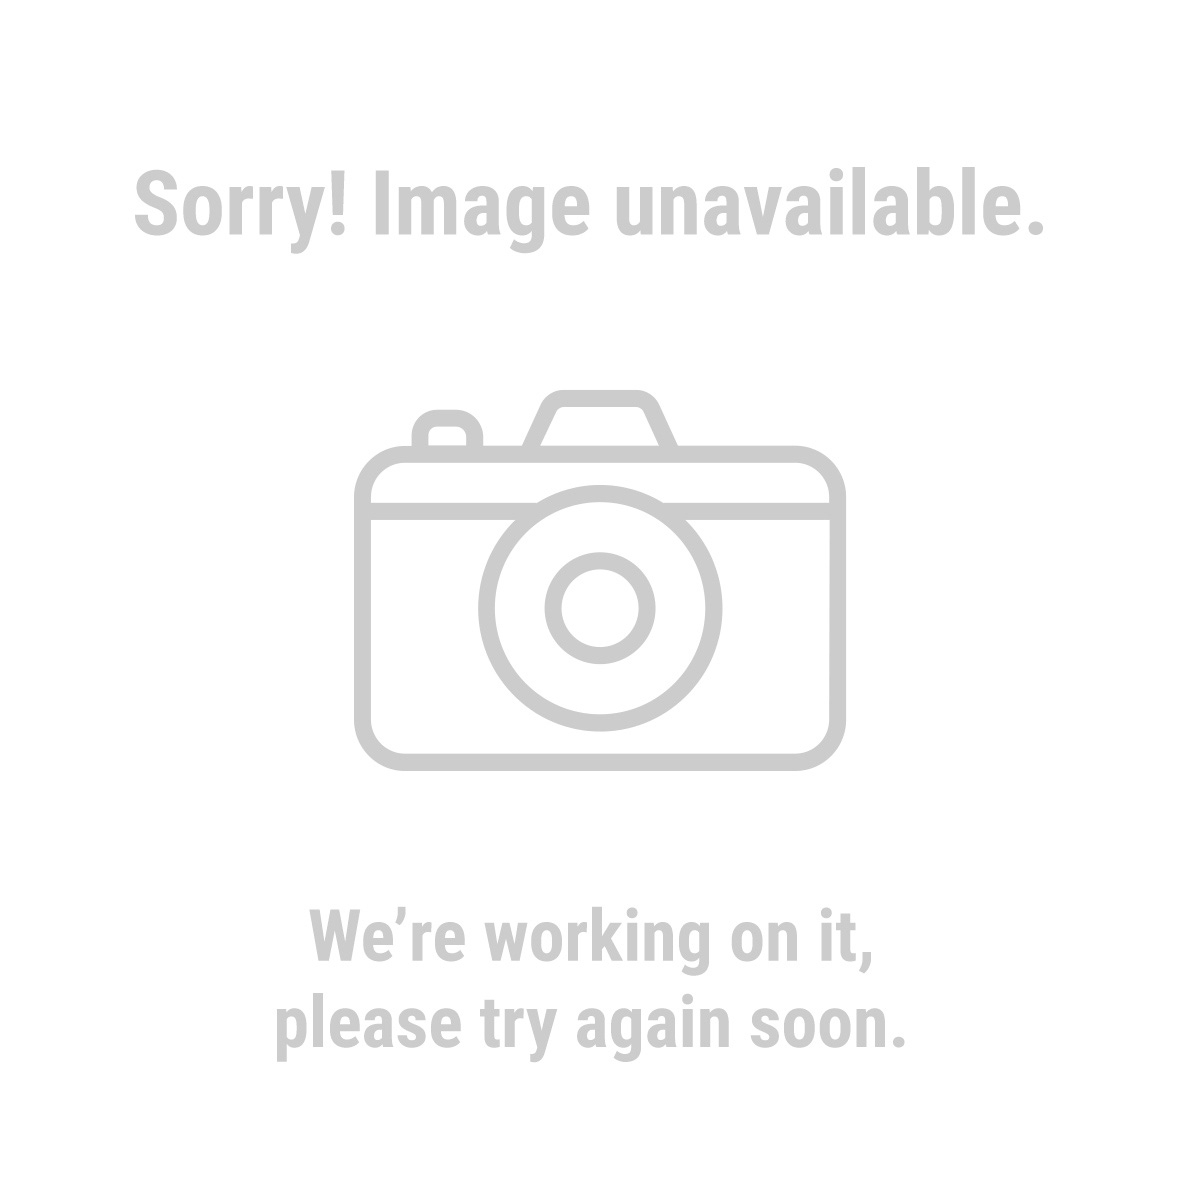 "Warrior 60290 4-1/2"" Backing Pad for Resin Fiber Discs"